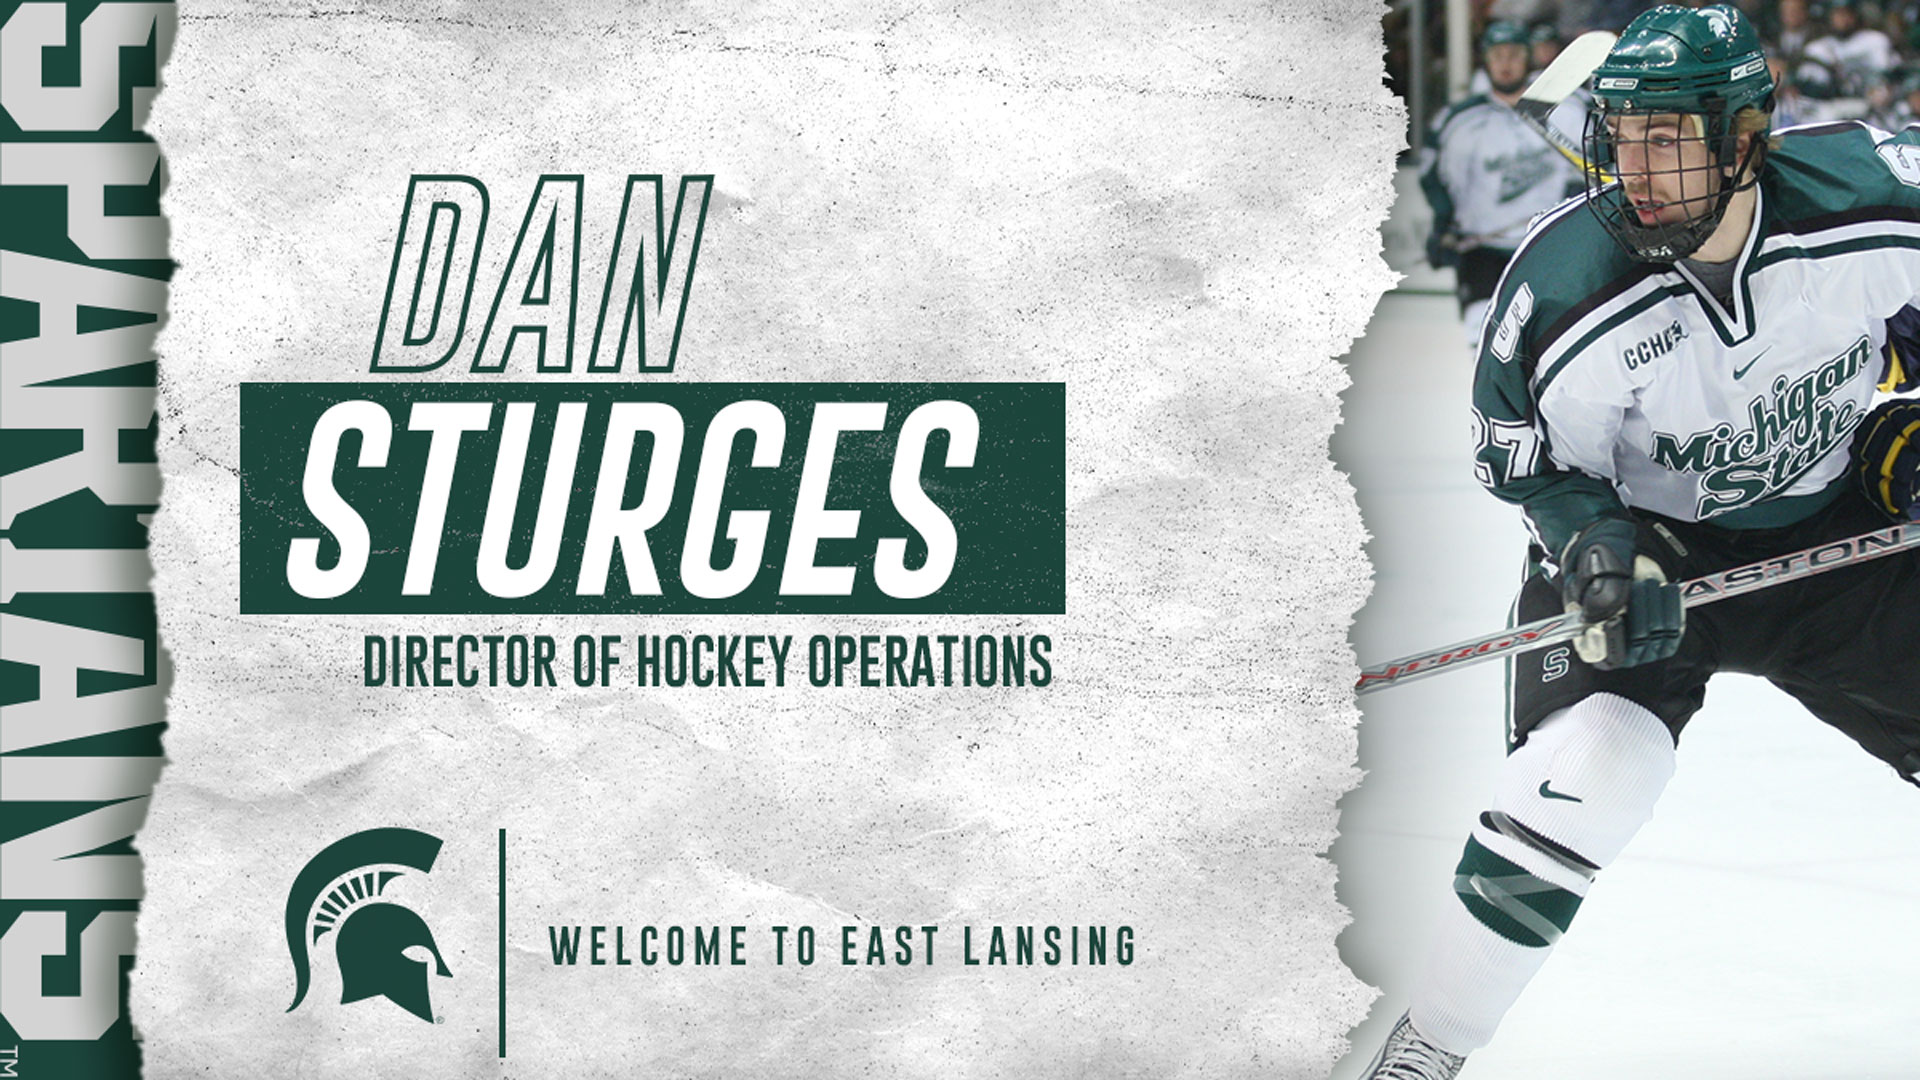 Dan Sturges Named Director of Hockey Operations